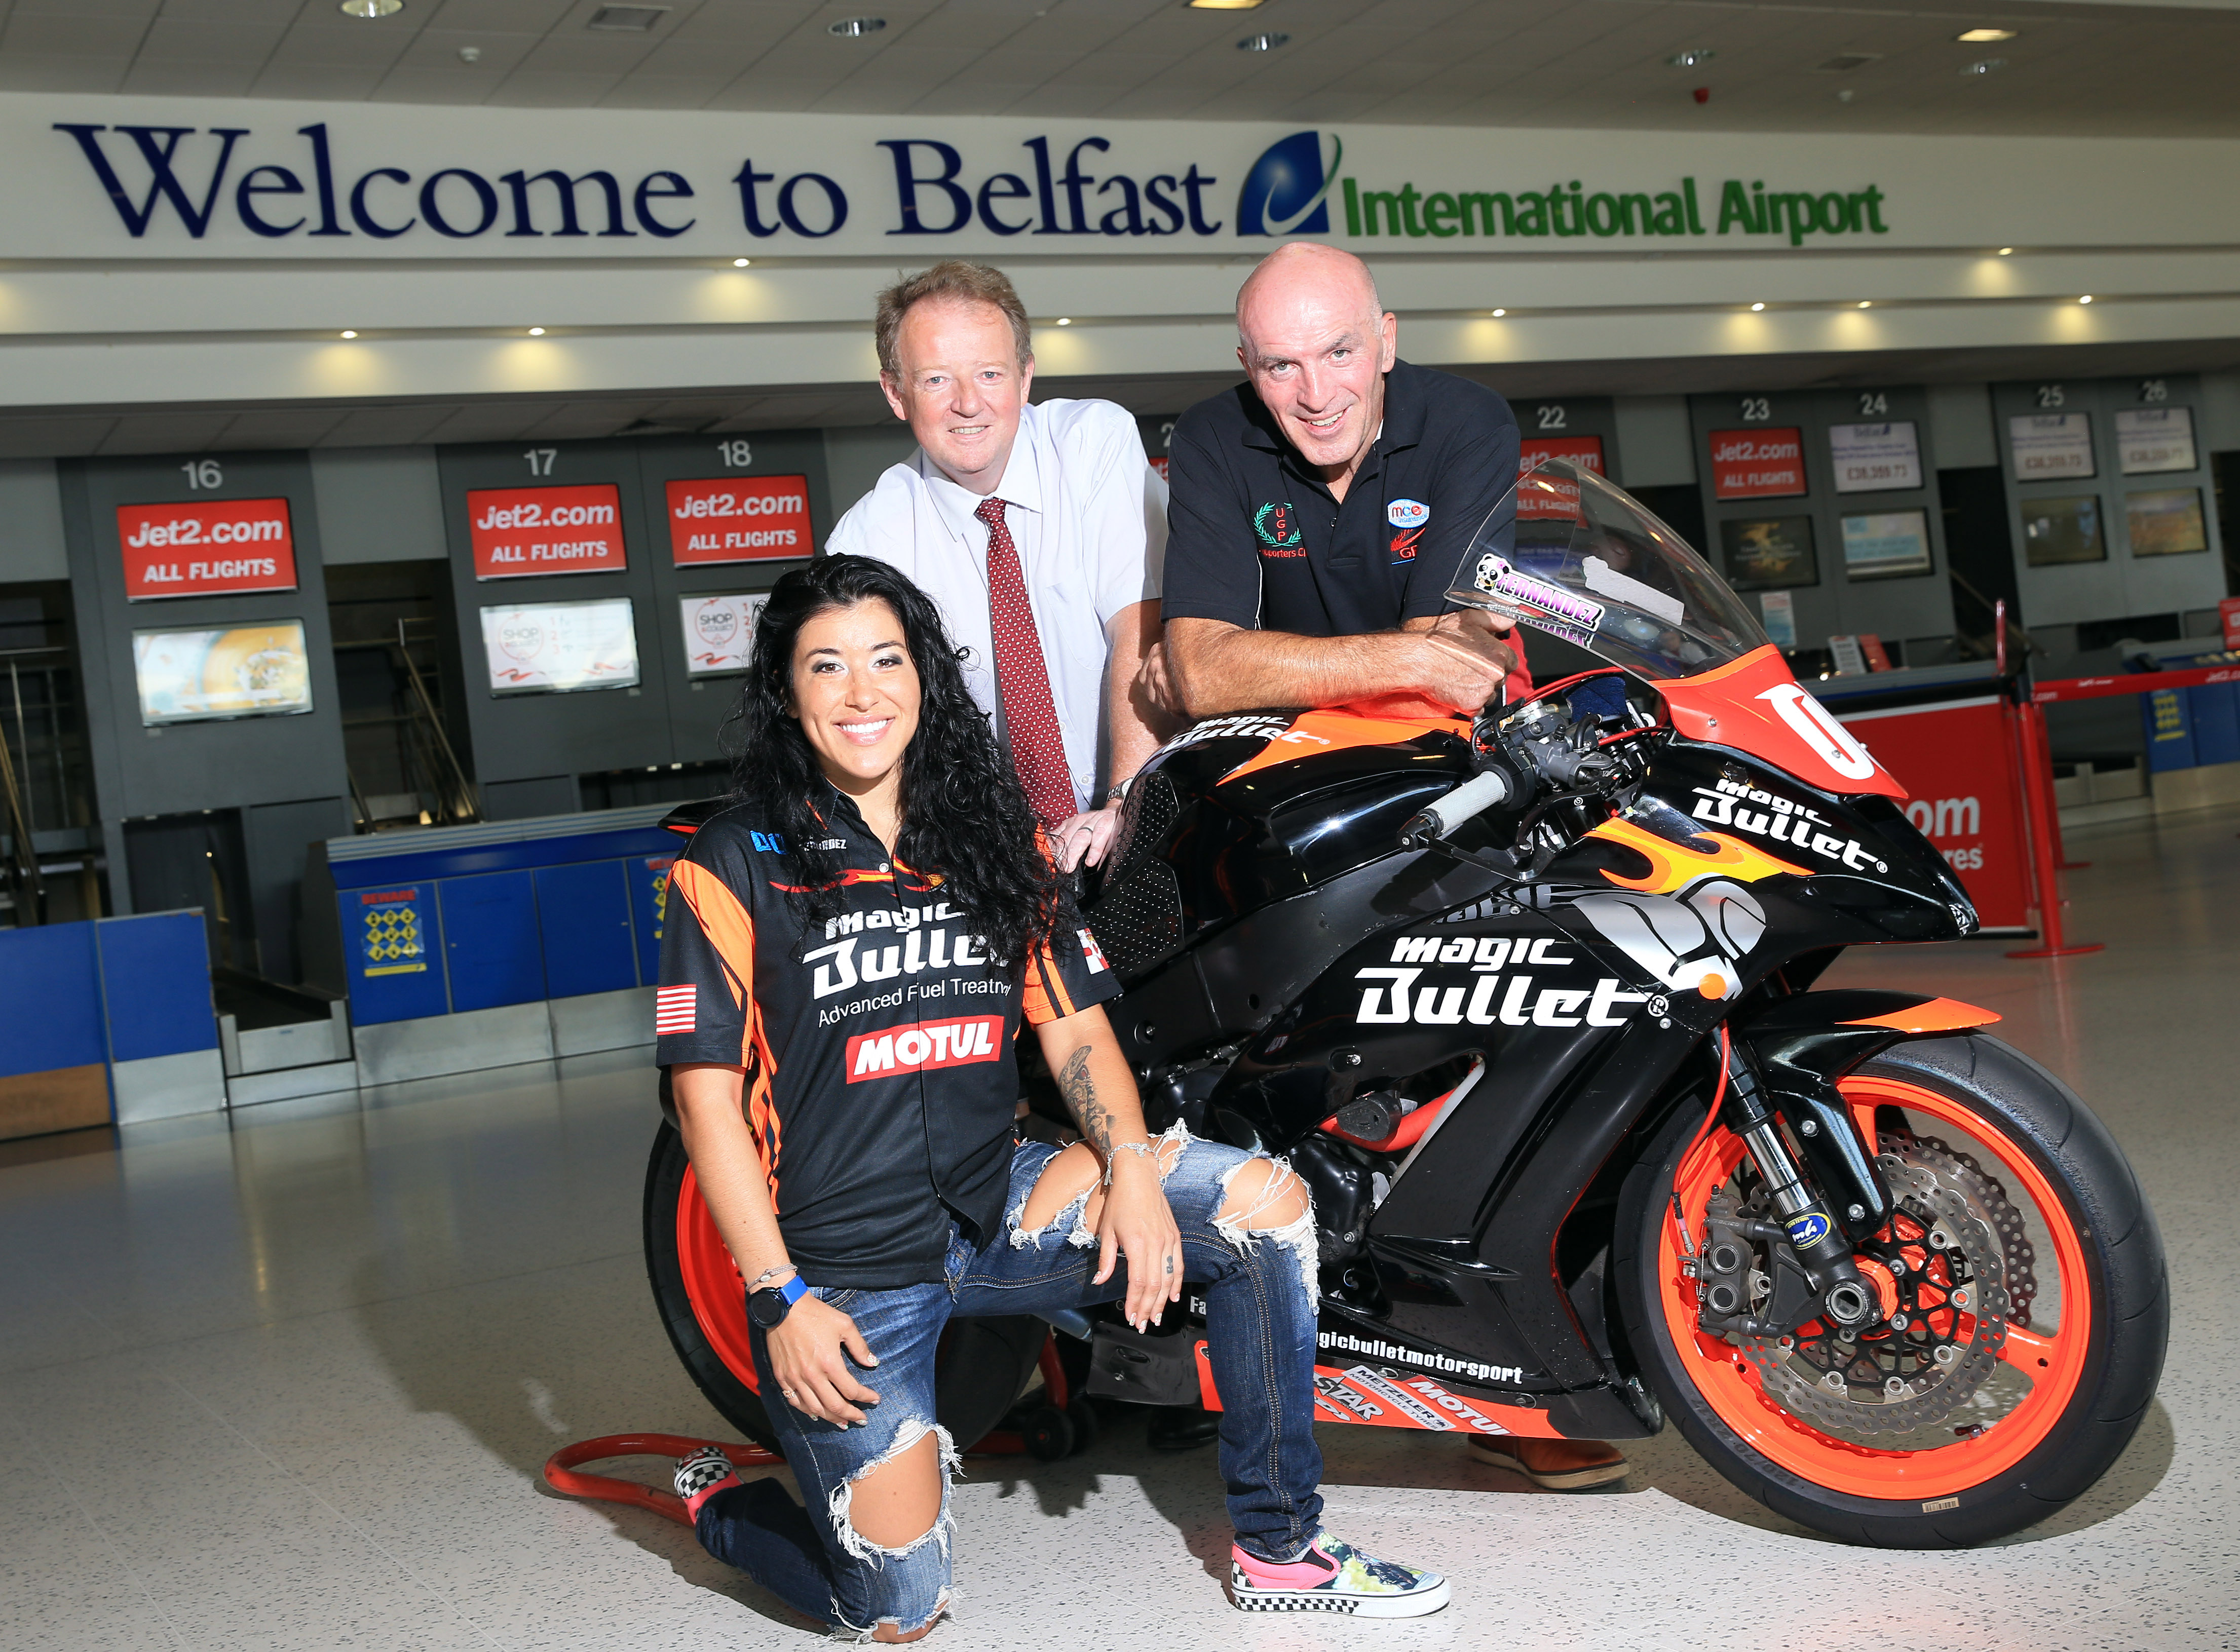 Fernandez on form to smash record as Dundrod's fastest female